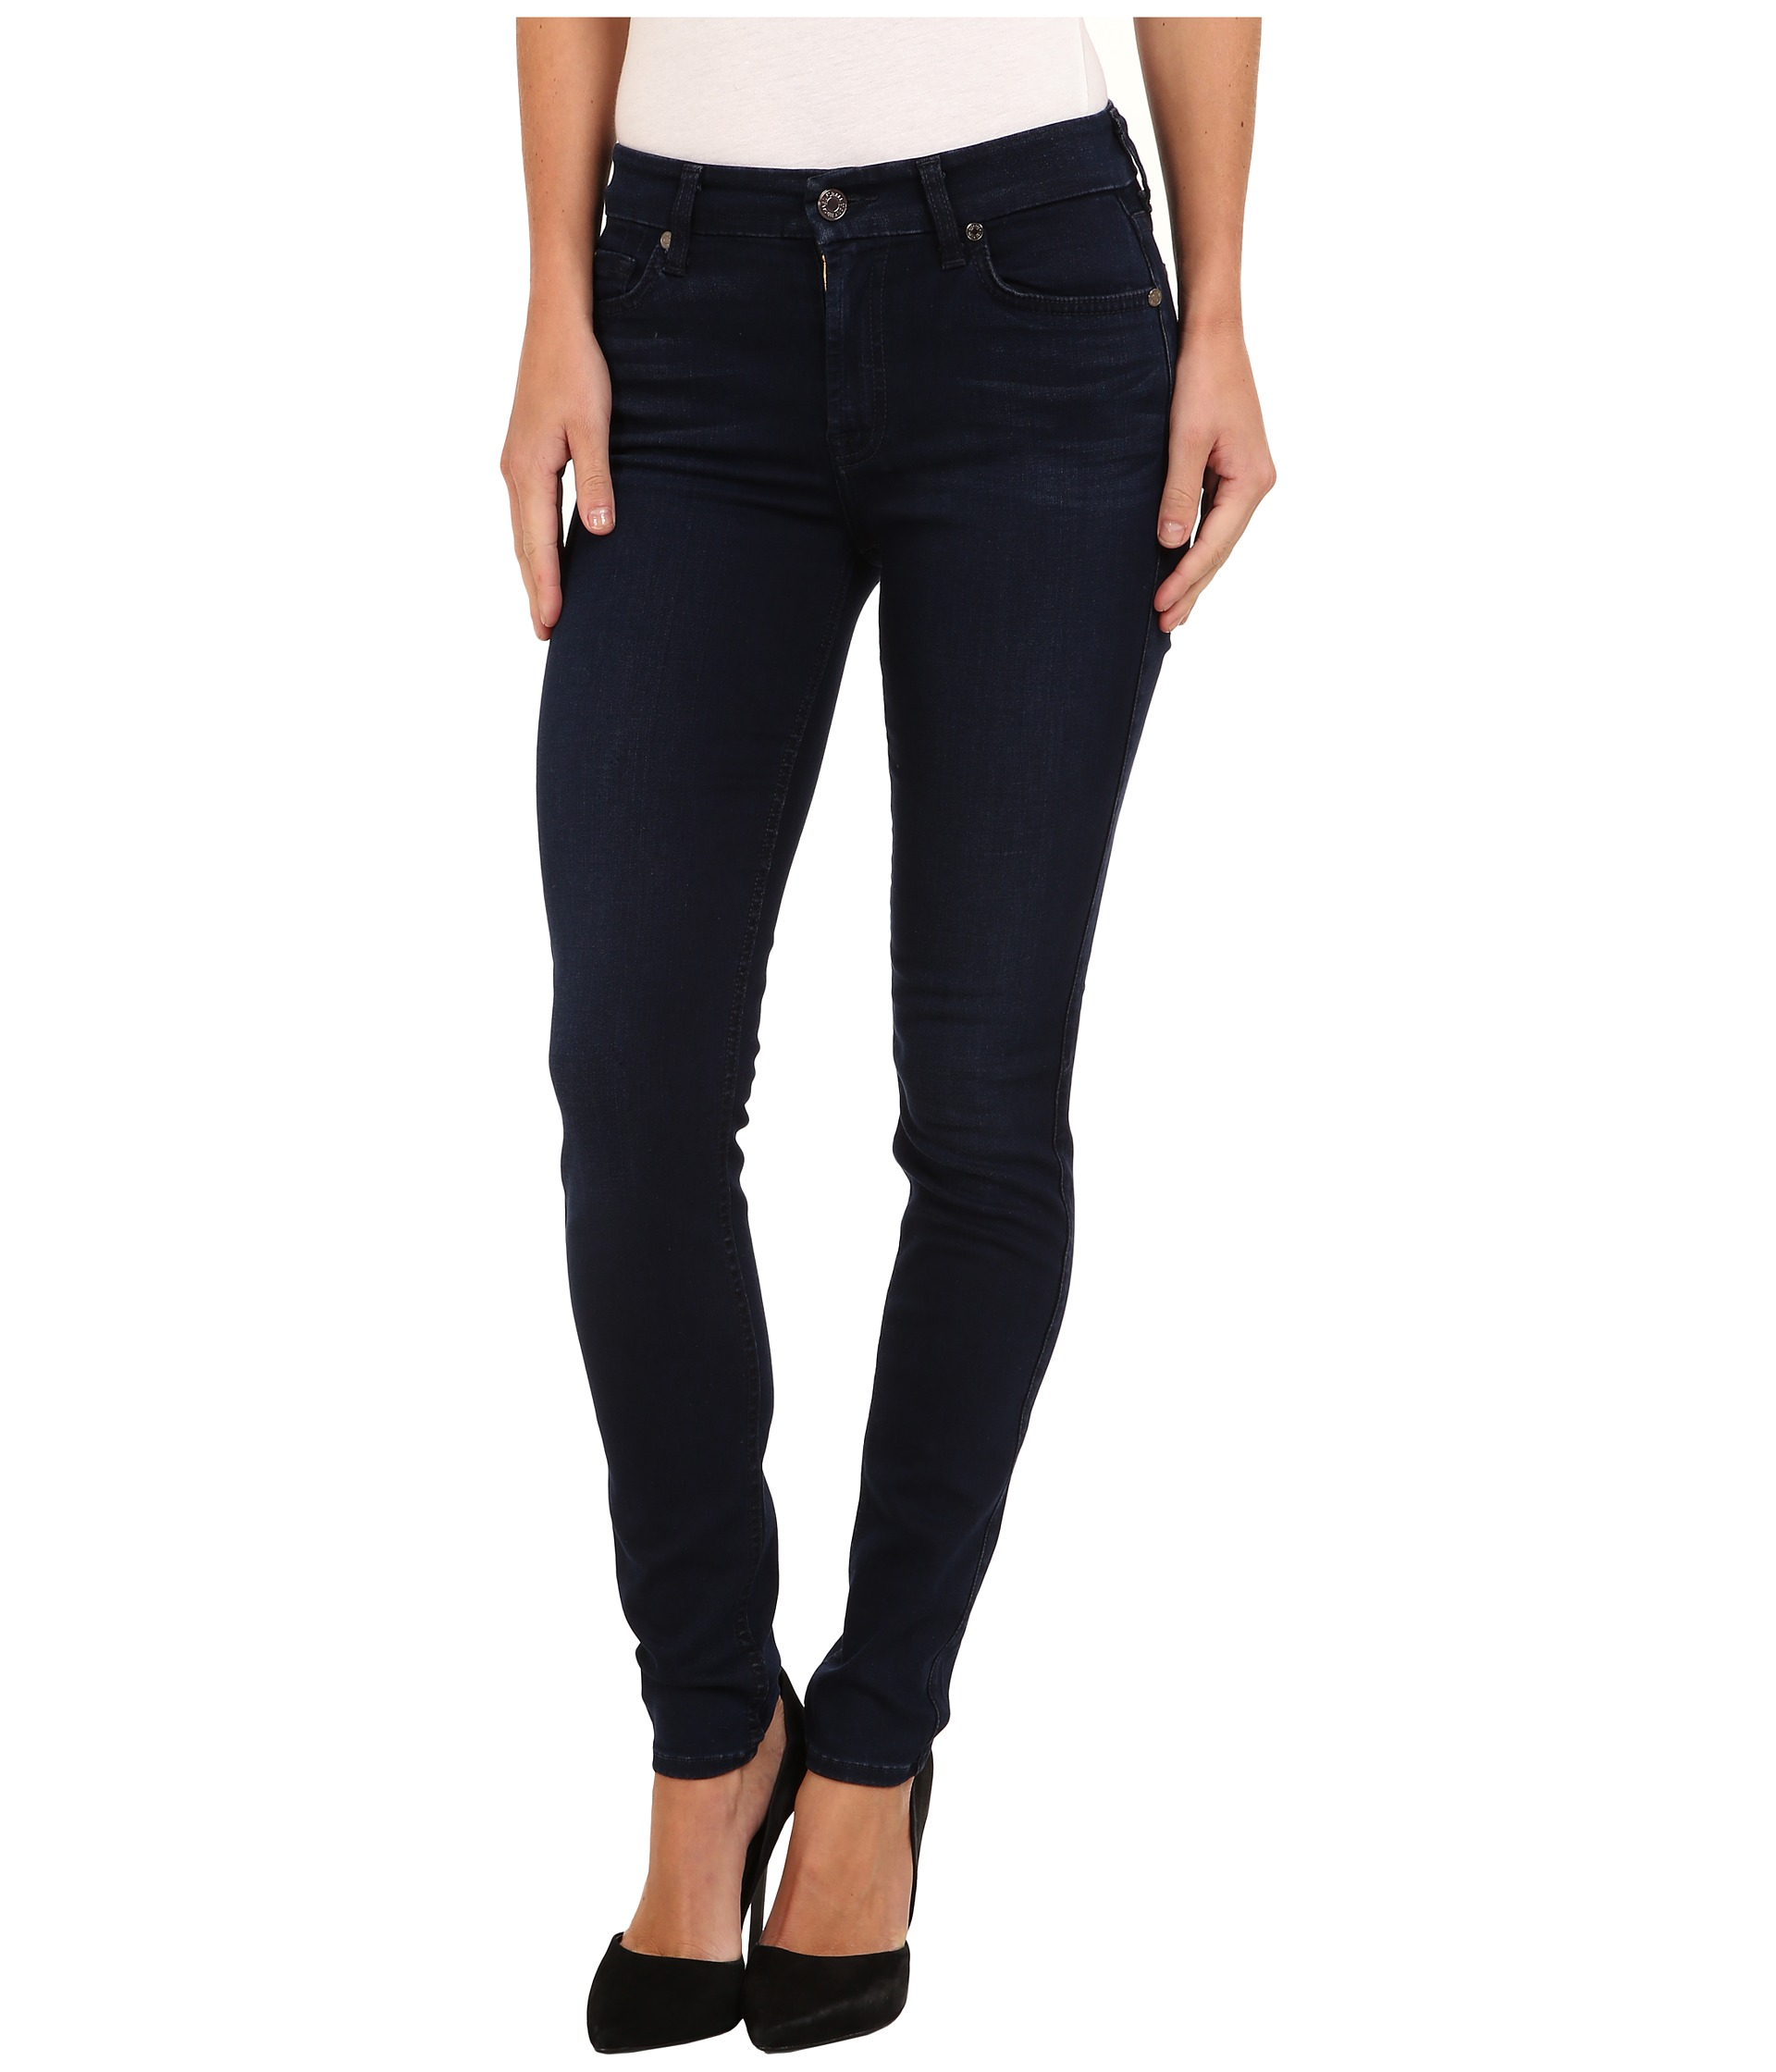 7 For All Mankind Slim Illusion LUXE Midrise Skinny w/ Contour ...